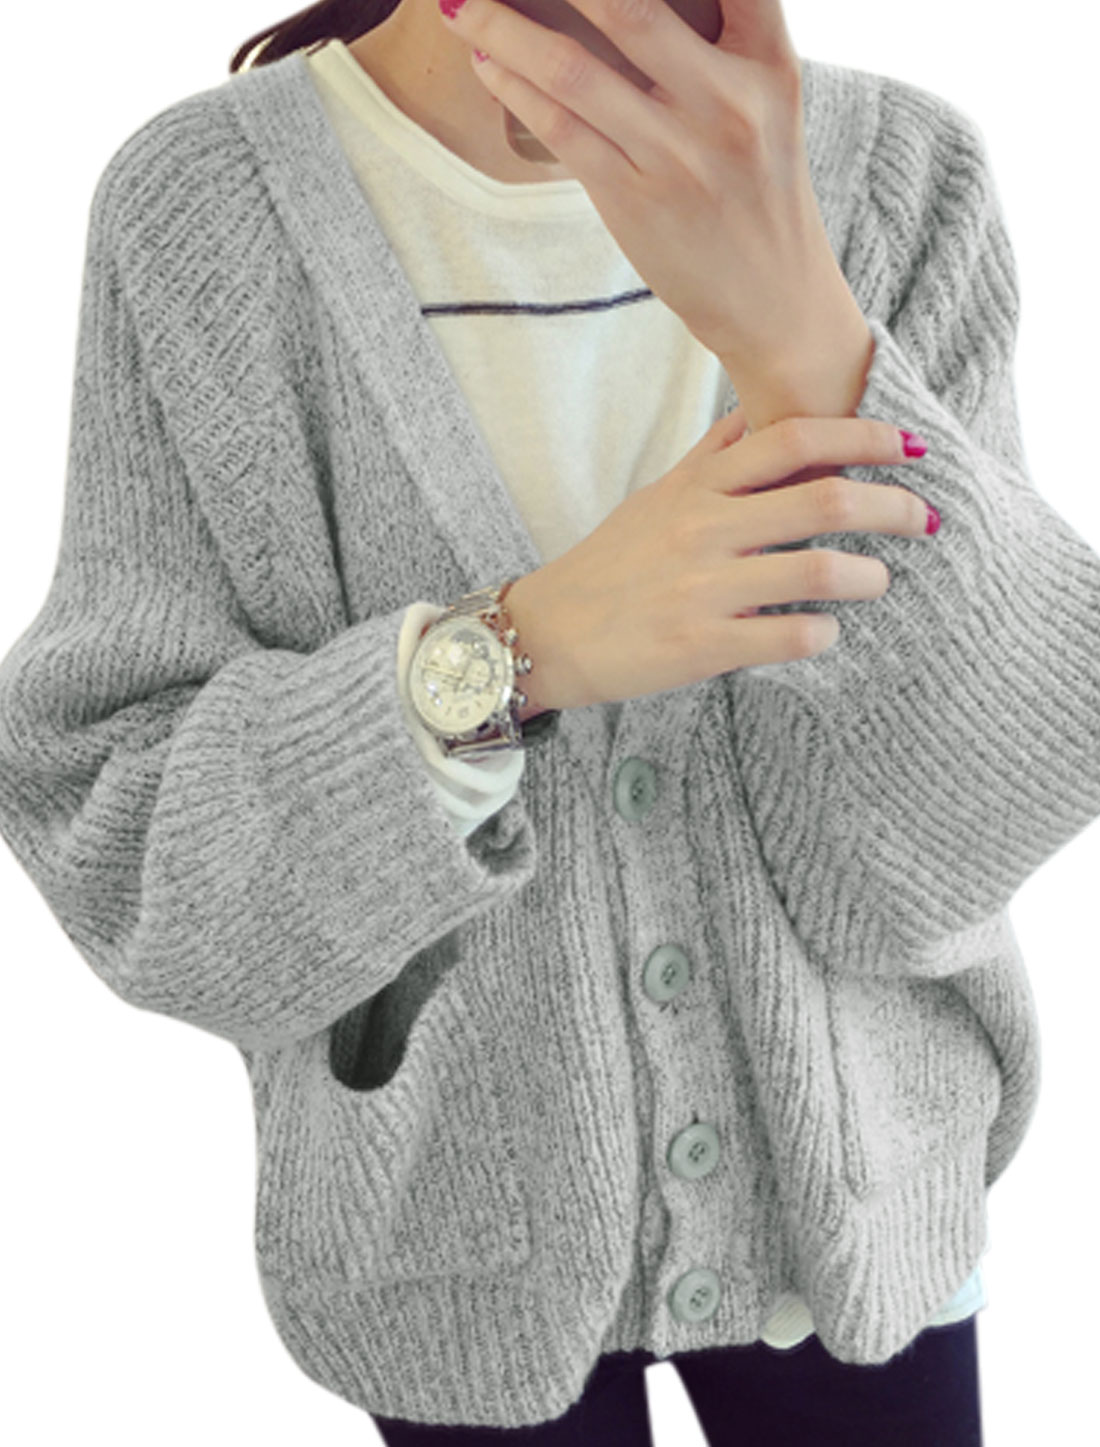 Woman Long Batwing Sleeves Four-Button Placket Sweater Cardigan Light Gray XS